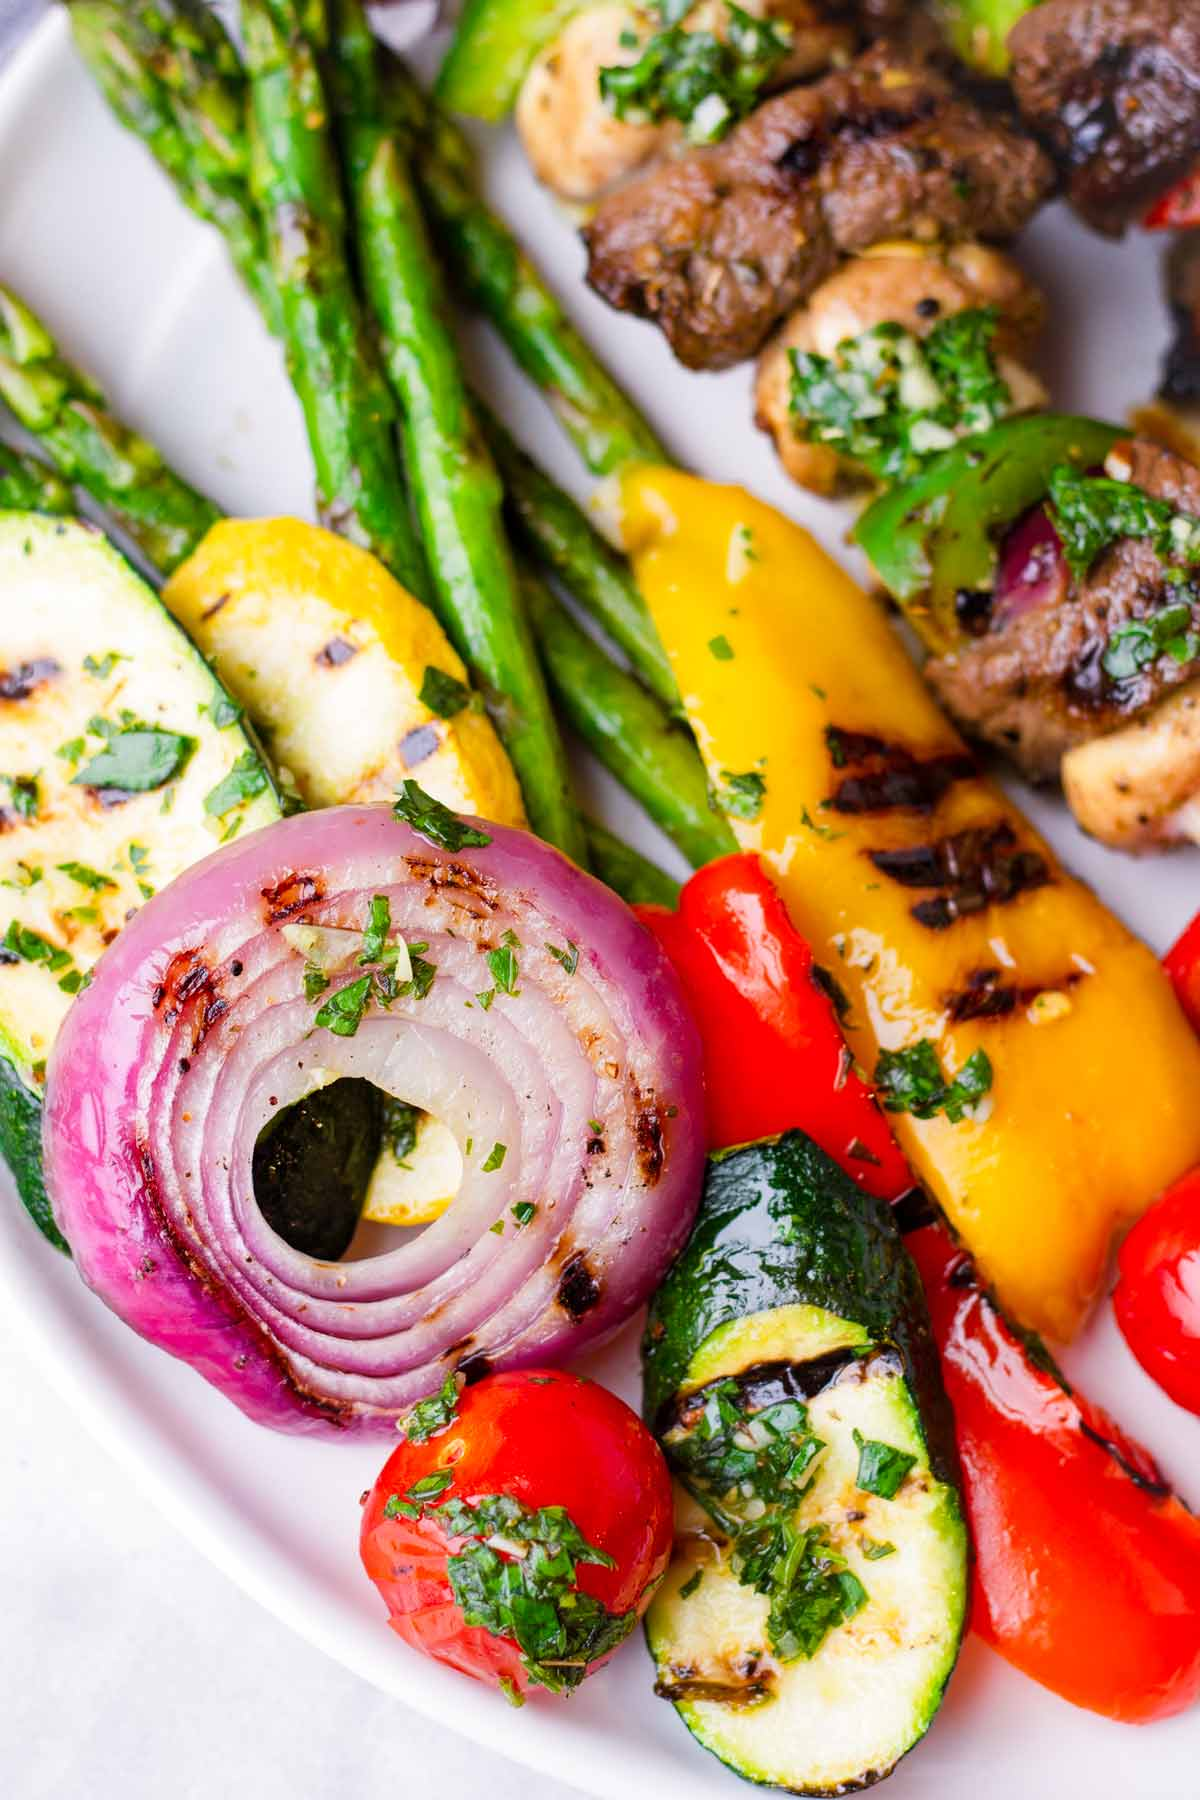 grilled onion, zucchini, tomatoes, asparagus, and peppers